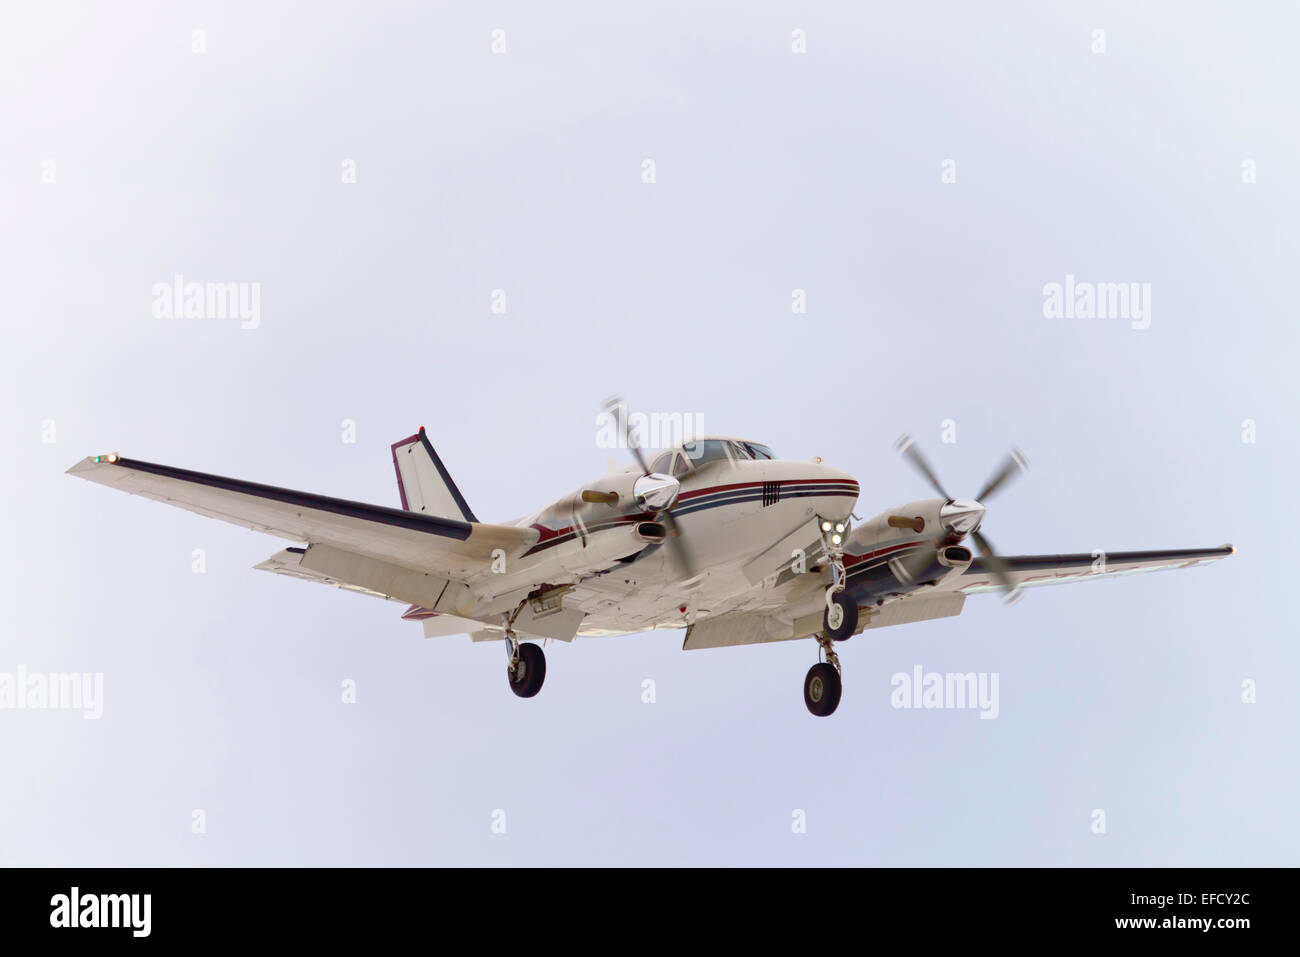 Twin engine aircraft - Stock Image